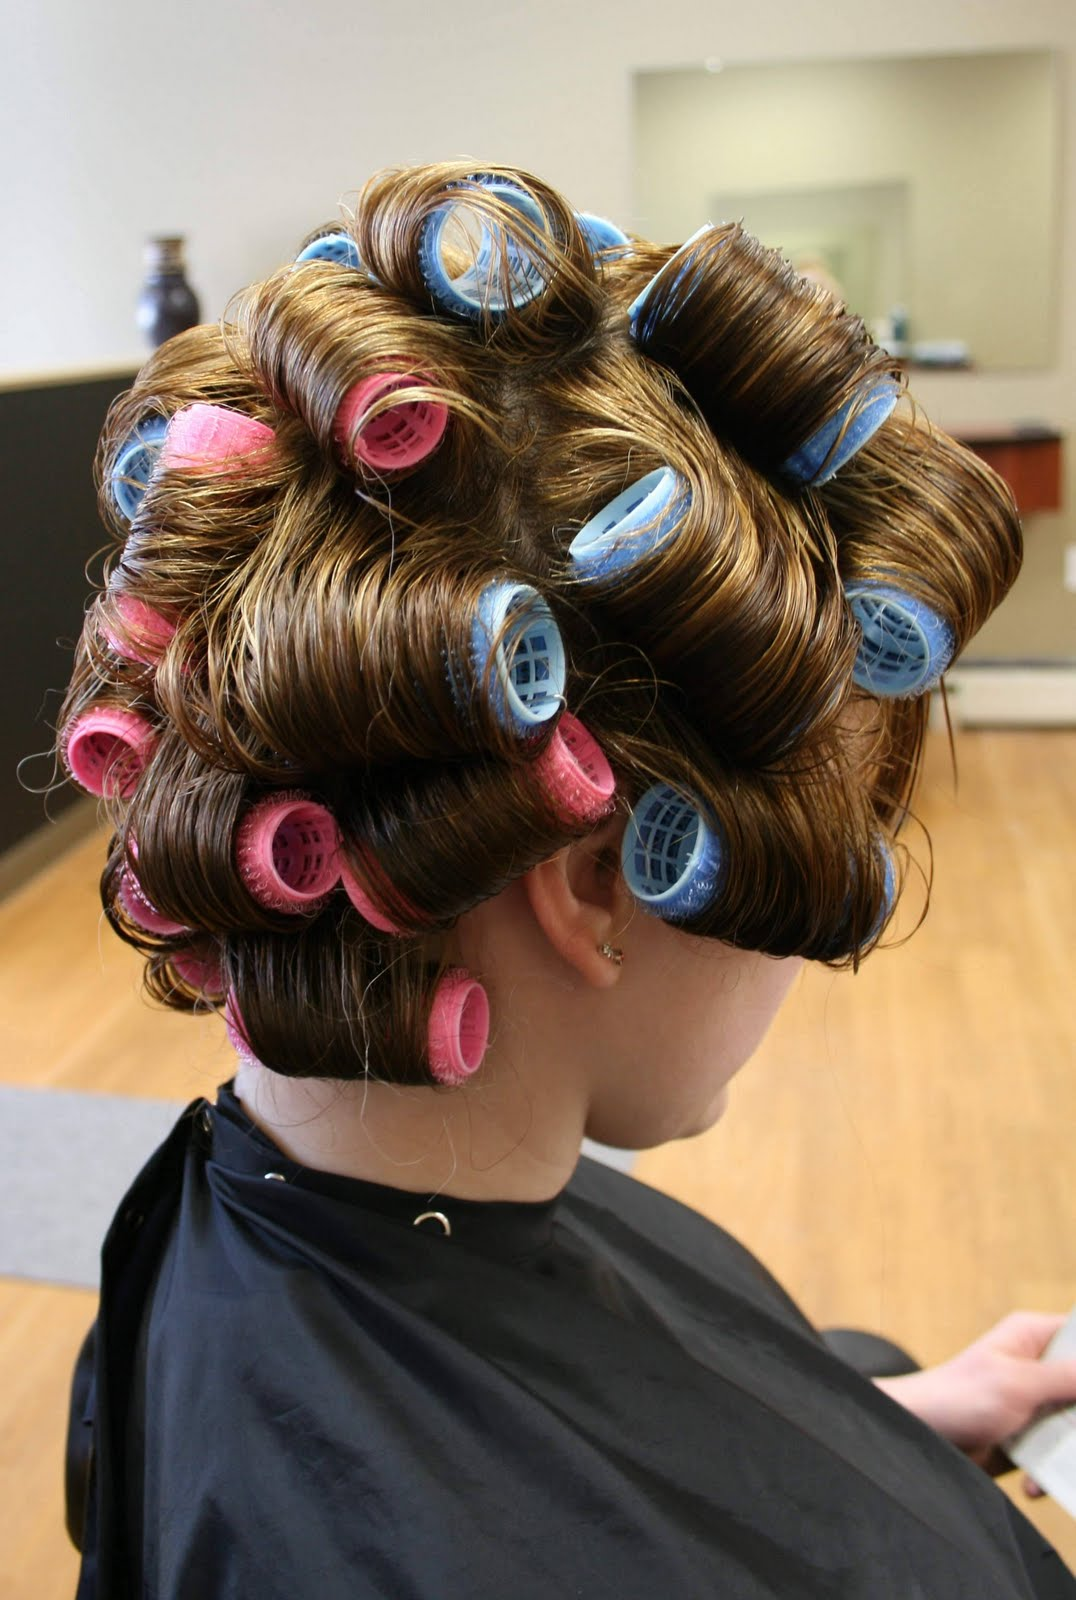 Here is what your hair should look like with the hot rollers in it